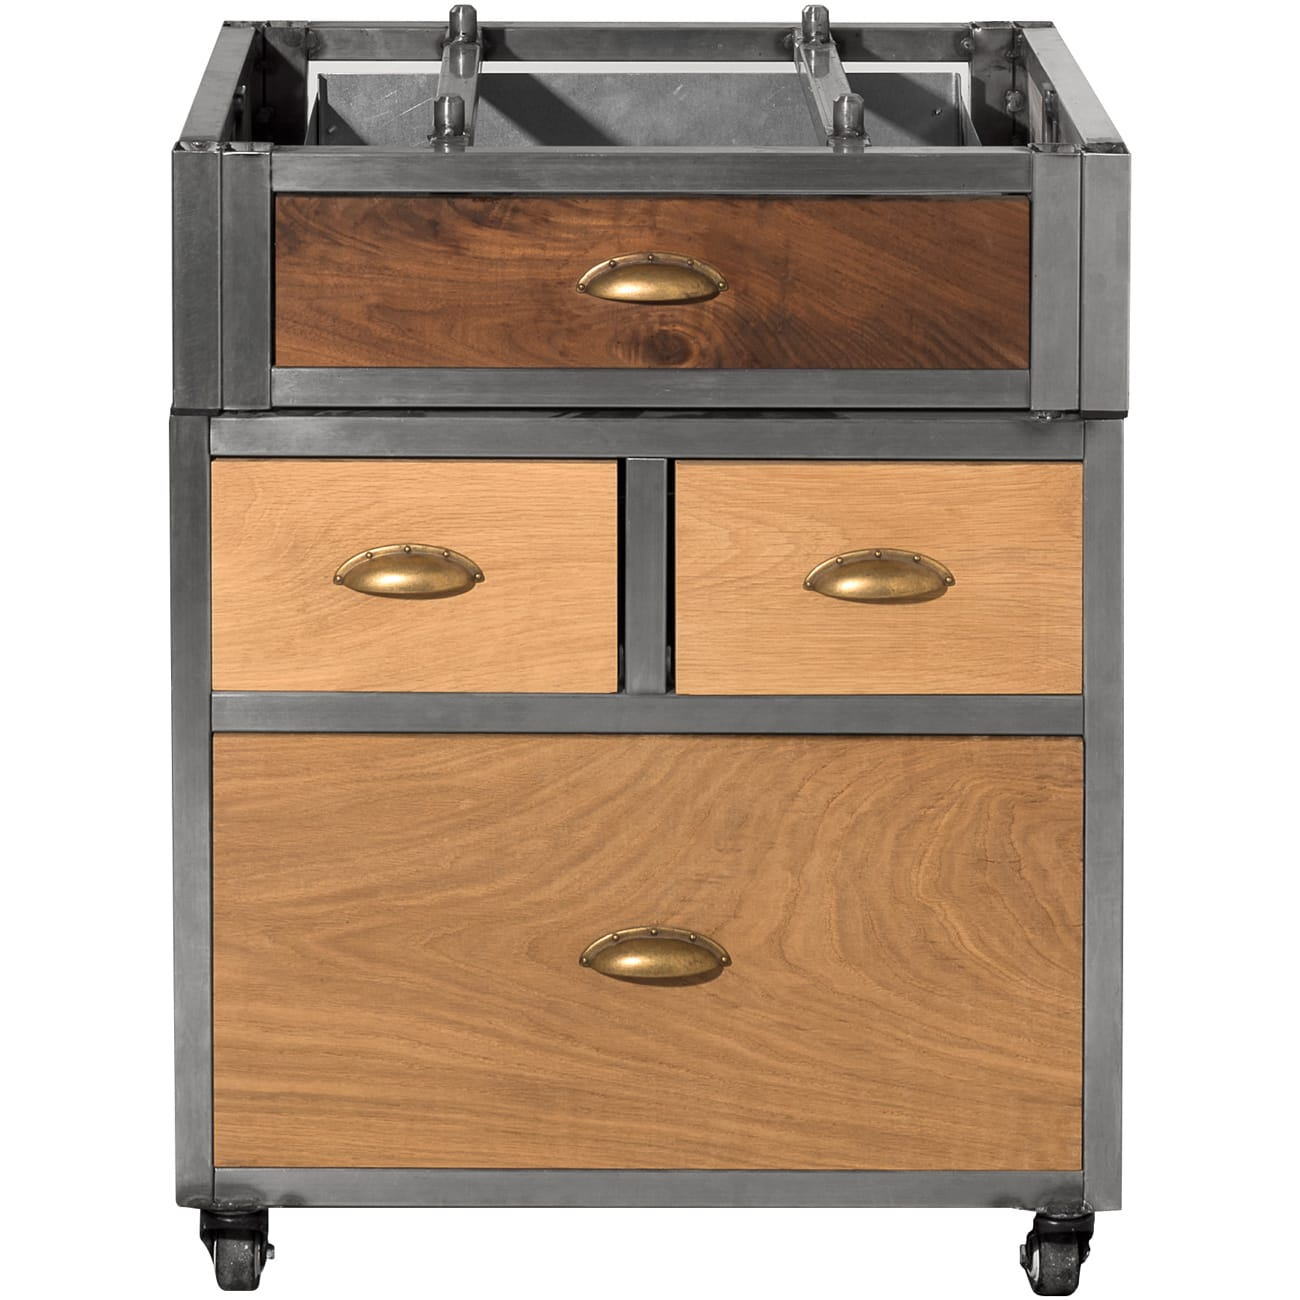 harrison charcoal oven cabinet walnut oak.jpg